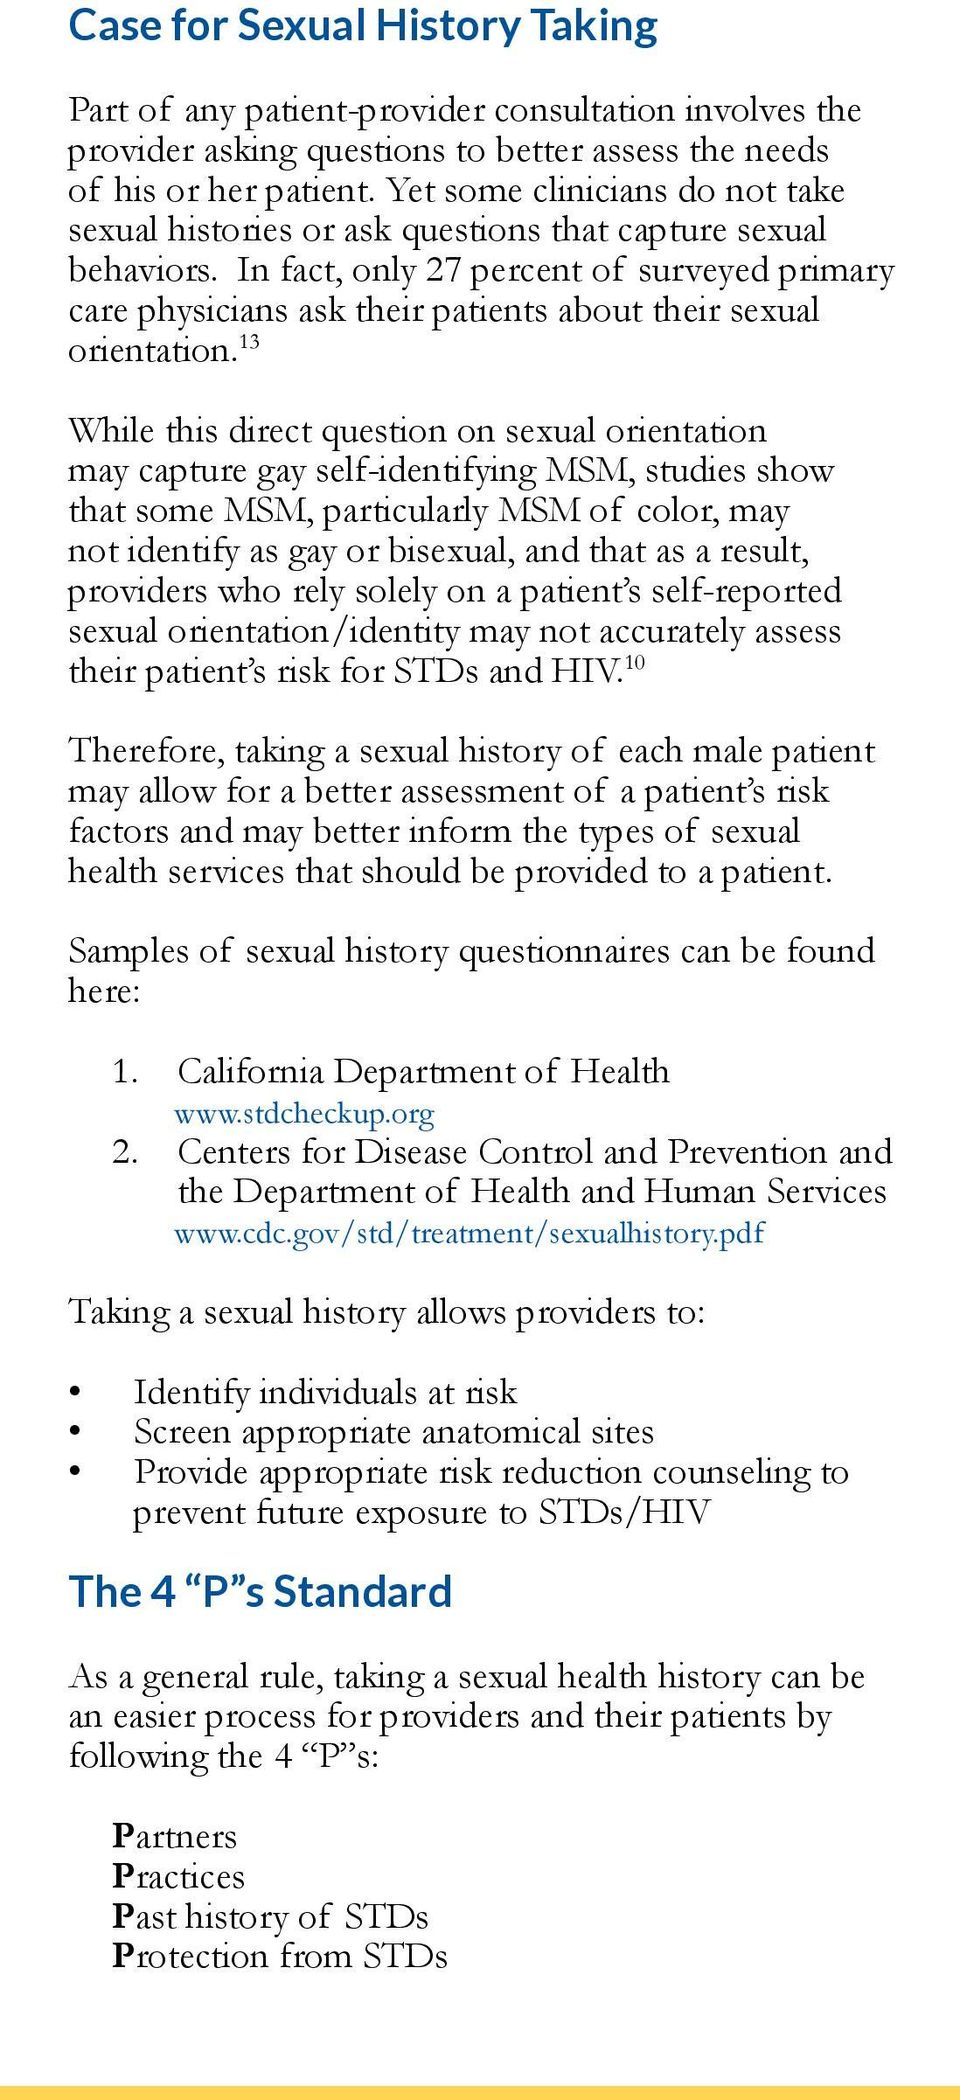 In fact, only 27 percent of surveyed primary care physicians ask their patients about their sexual orientation.